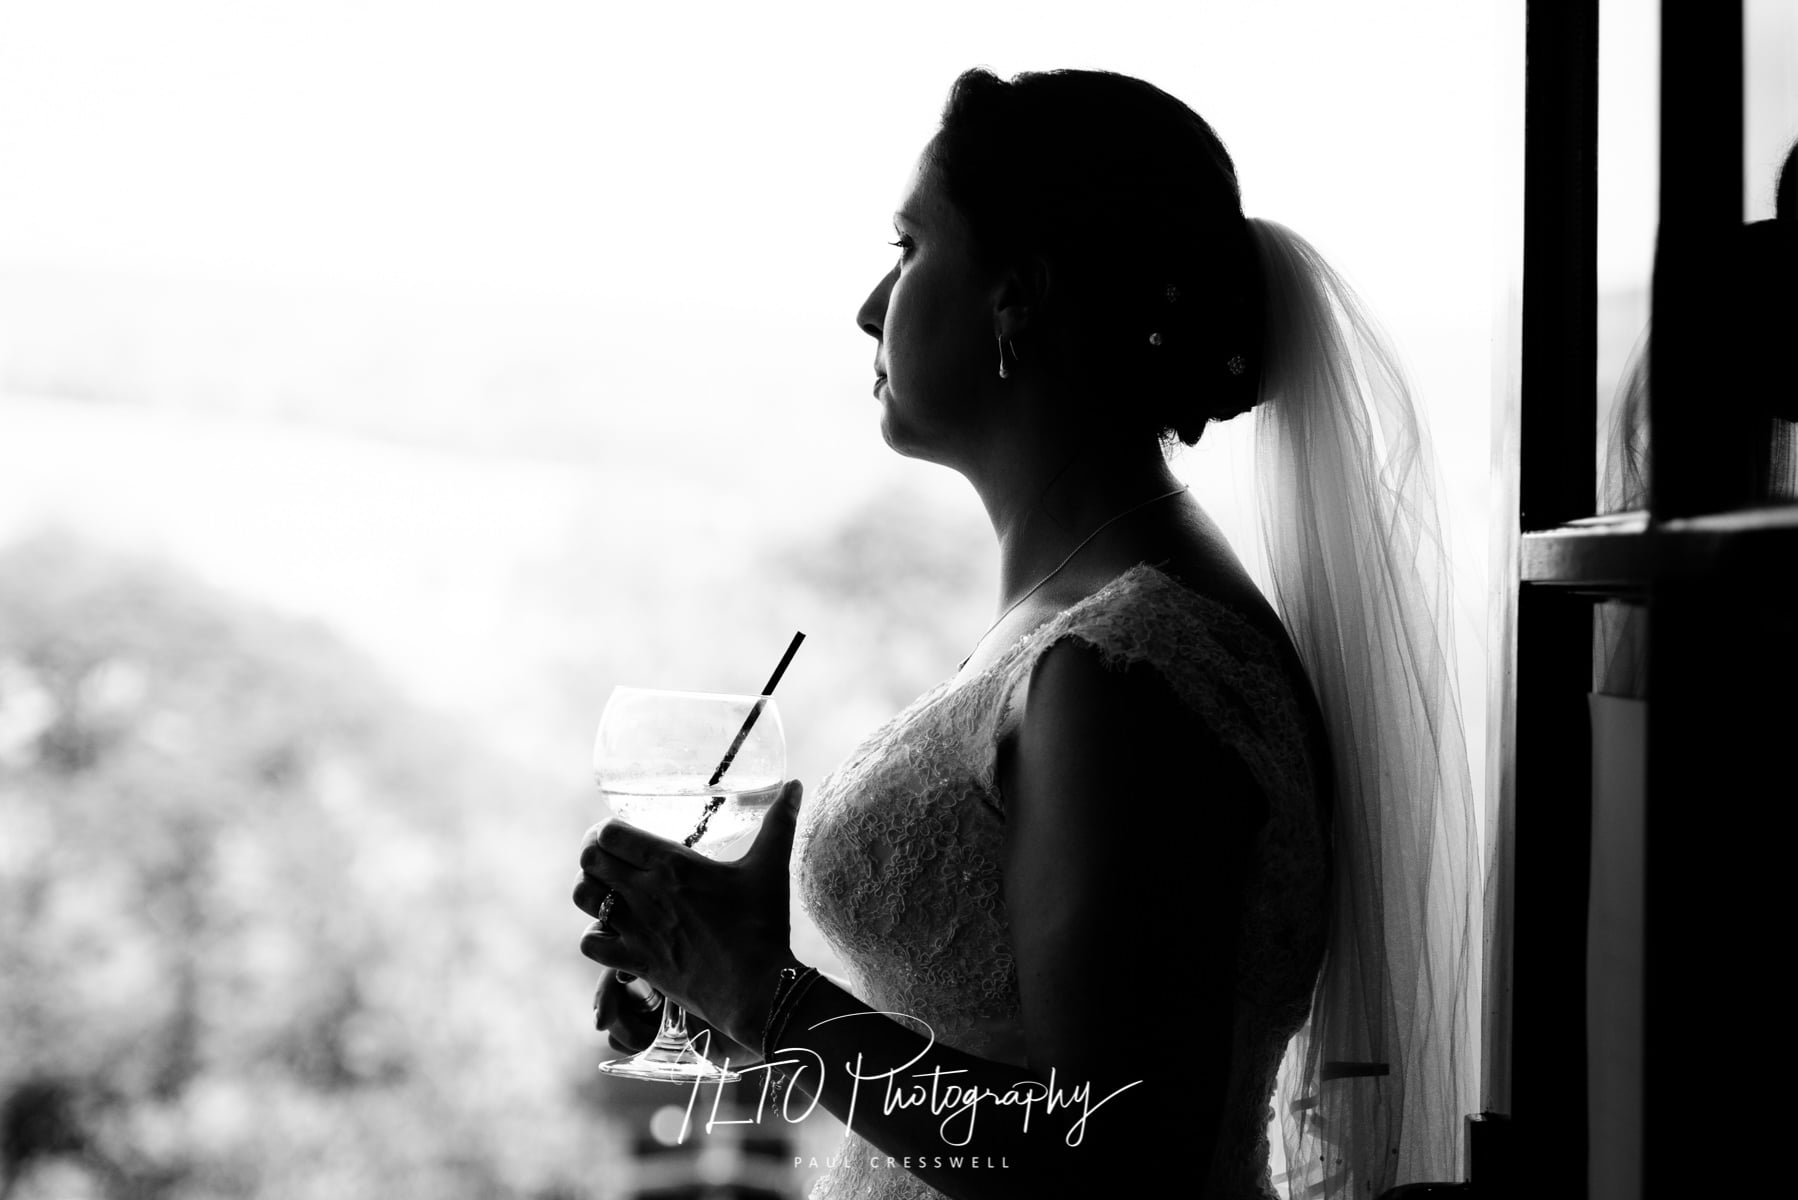 Beautiful wedding photography leeds wedding photographer ilto photography